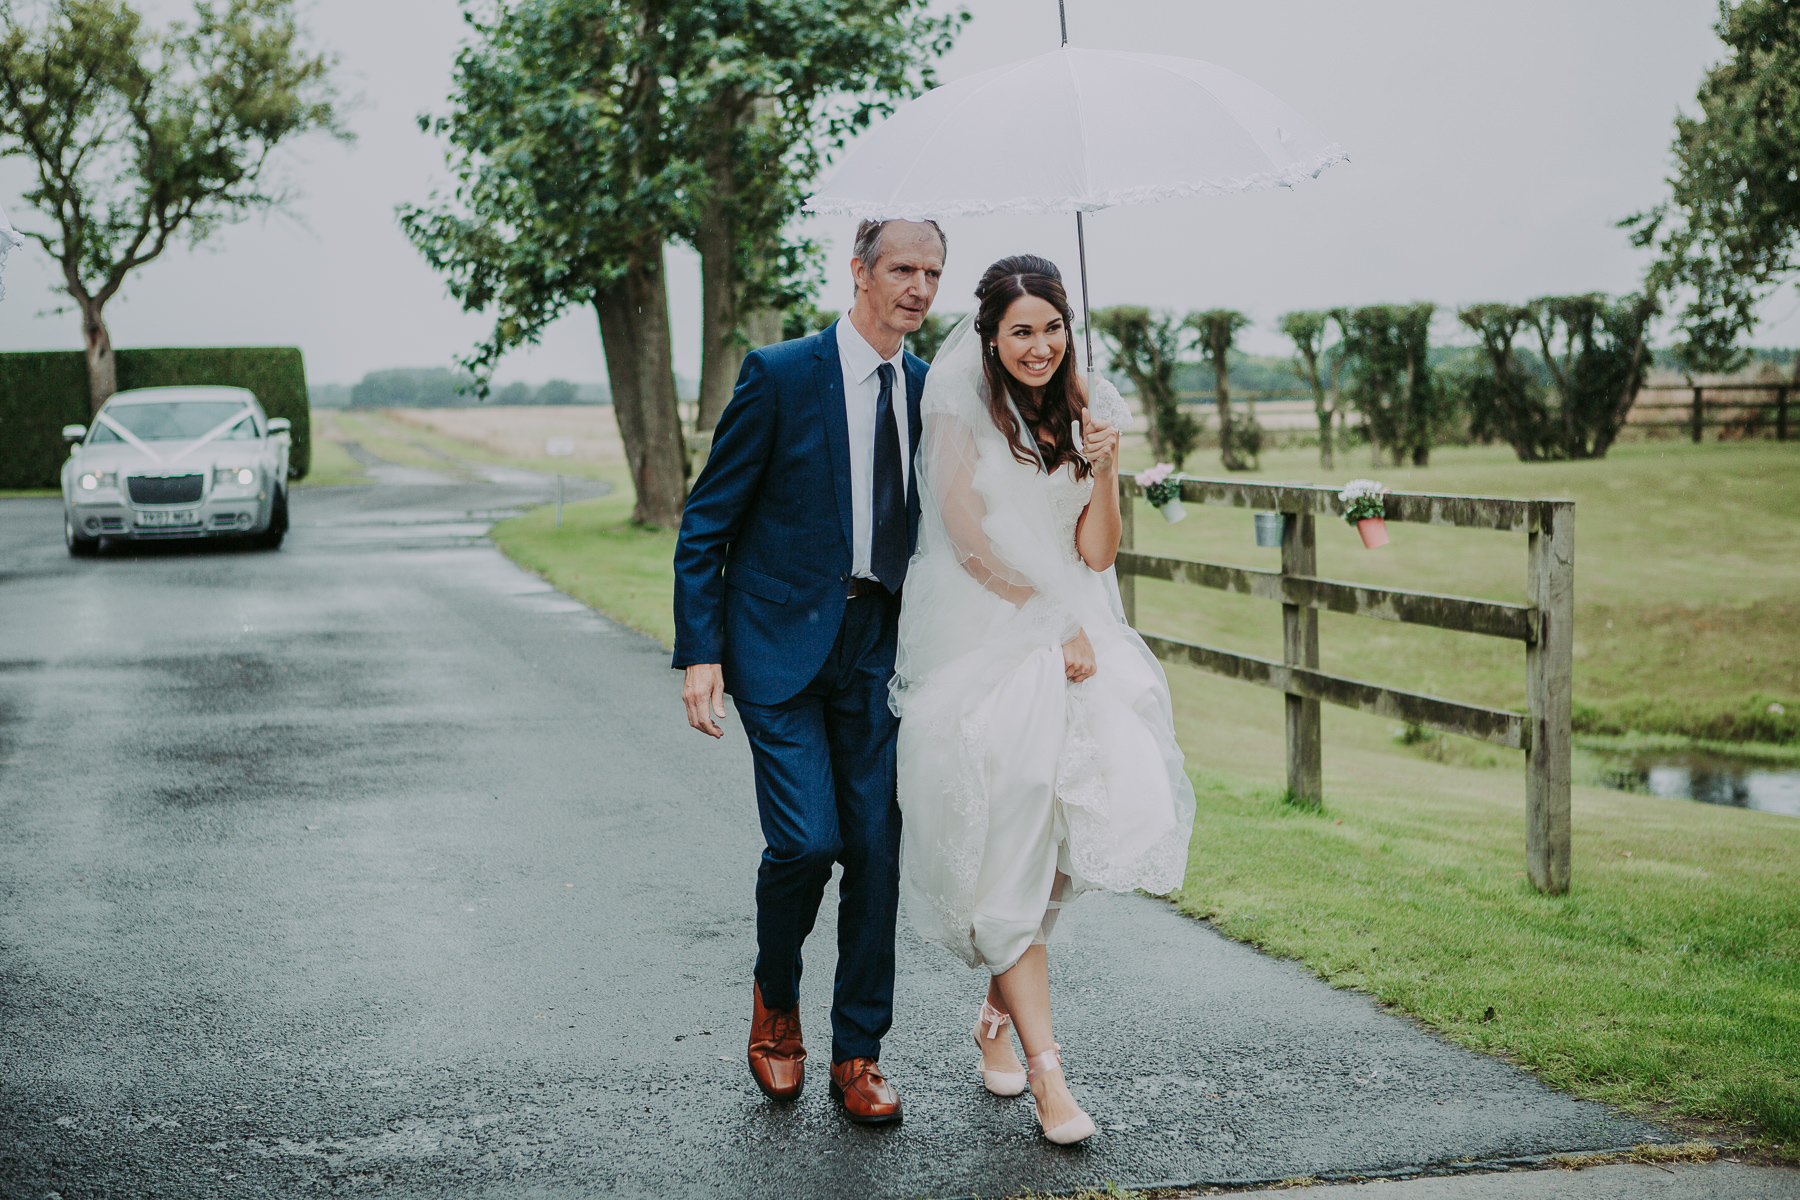 Natalie & Bill | Barmbyfield Barns Wedding 47